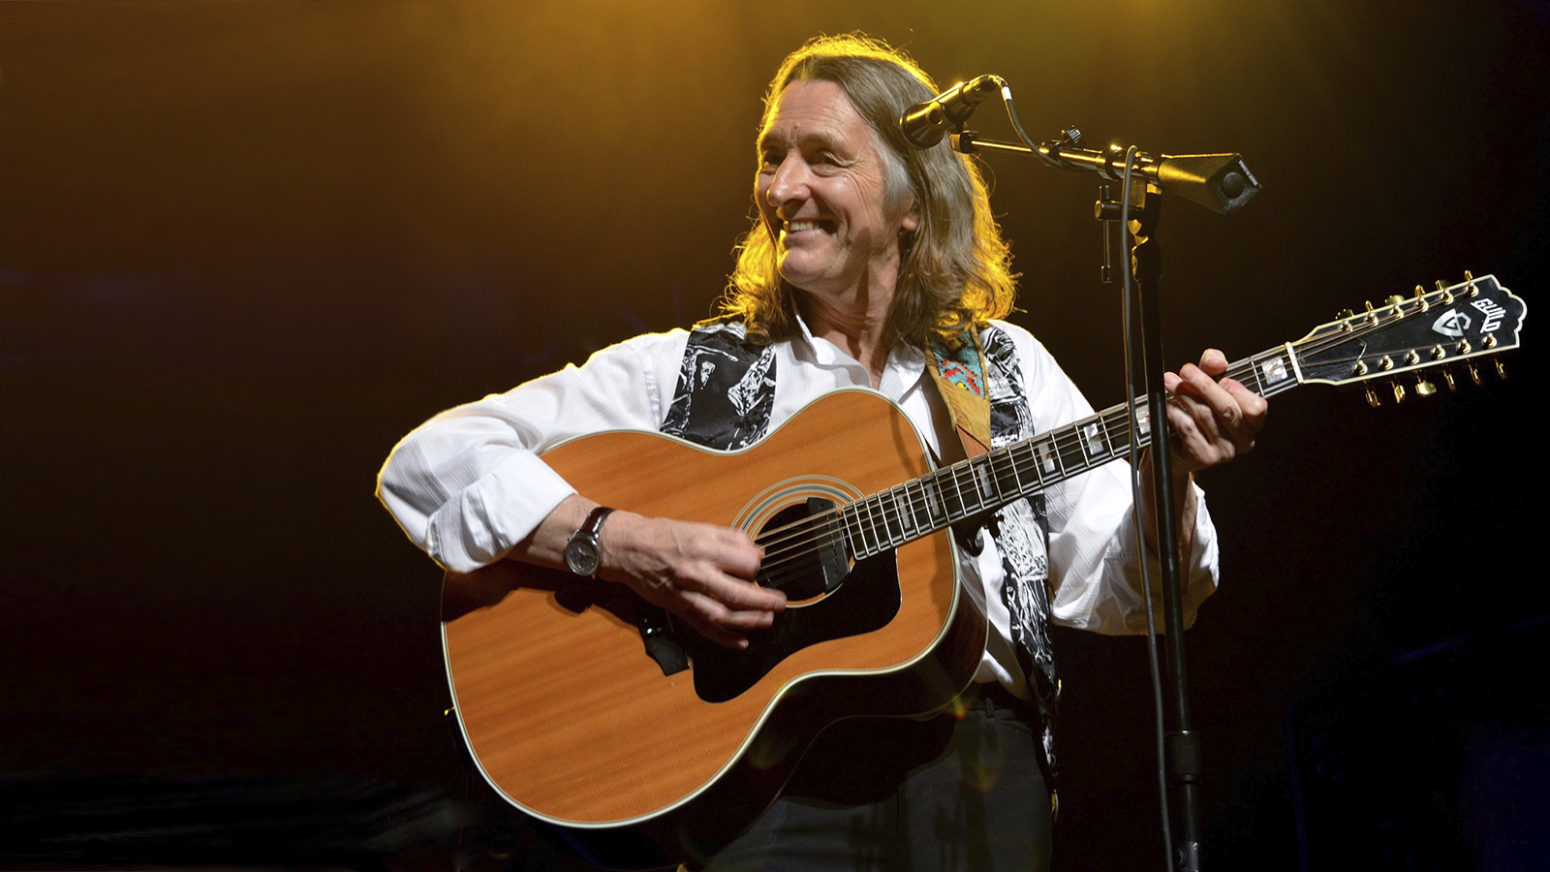 Supertramp's Roger Hodgson y Joanna Connor, primeras confirmaciones del BBK MUSIC LEGENDS FESTIVAL 2020